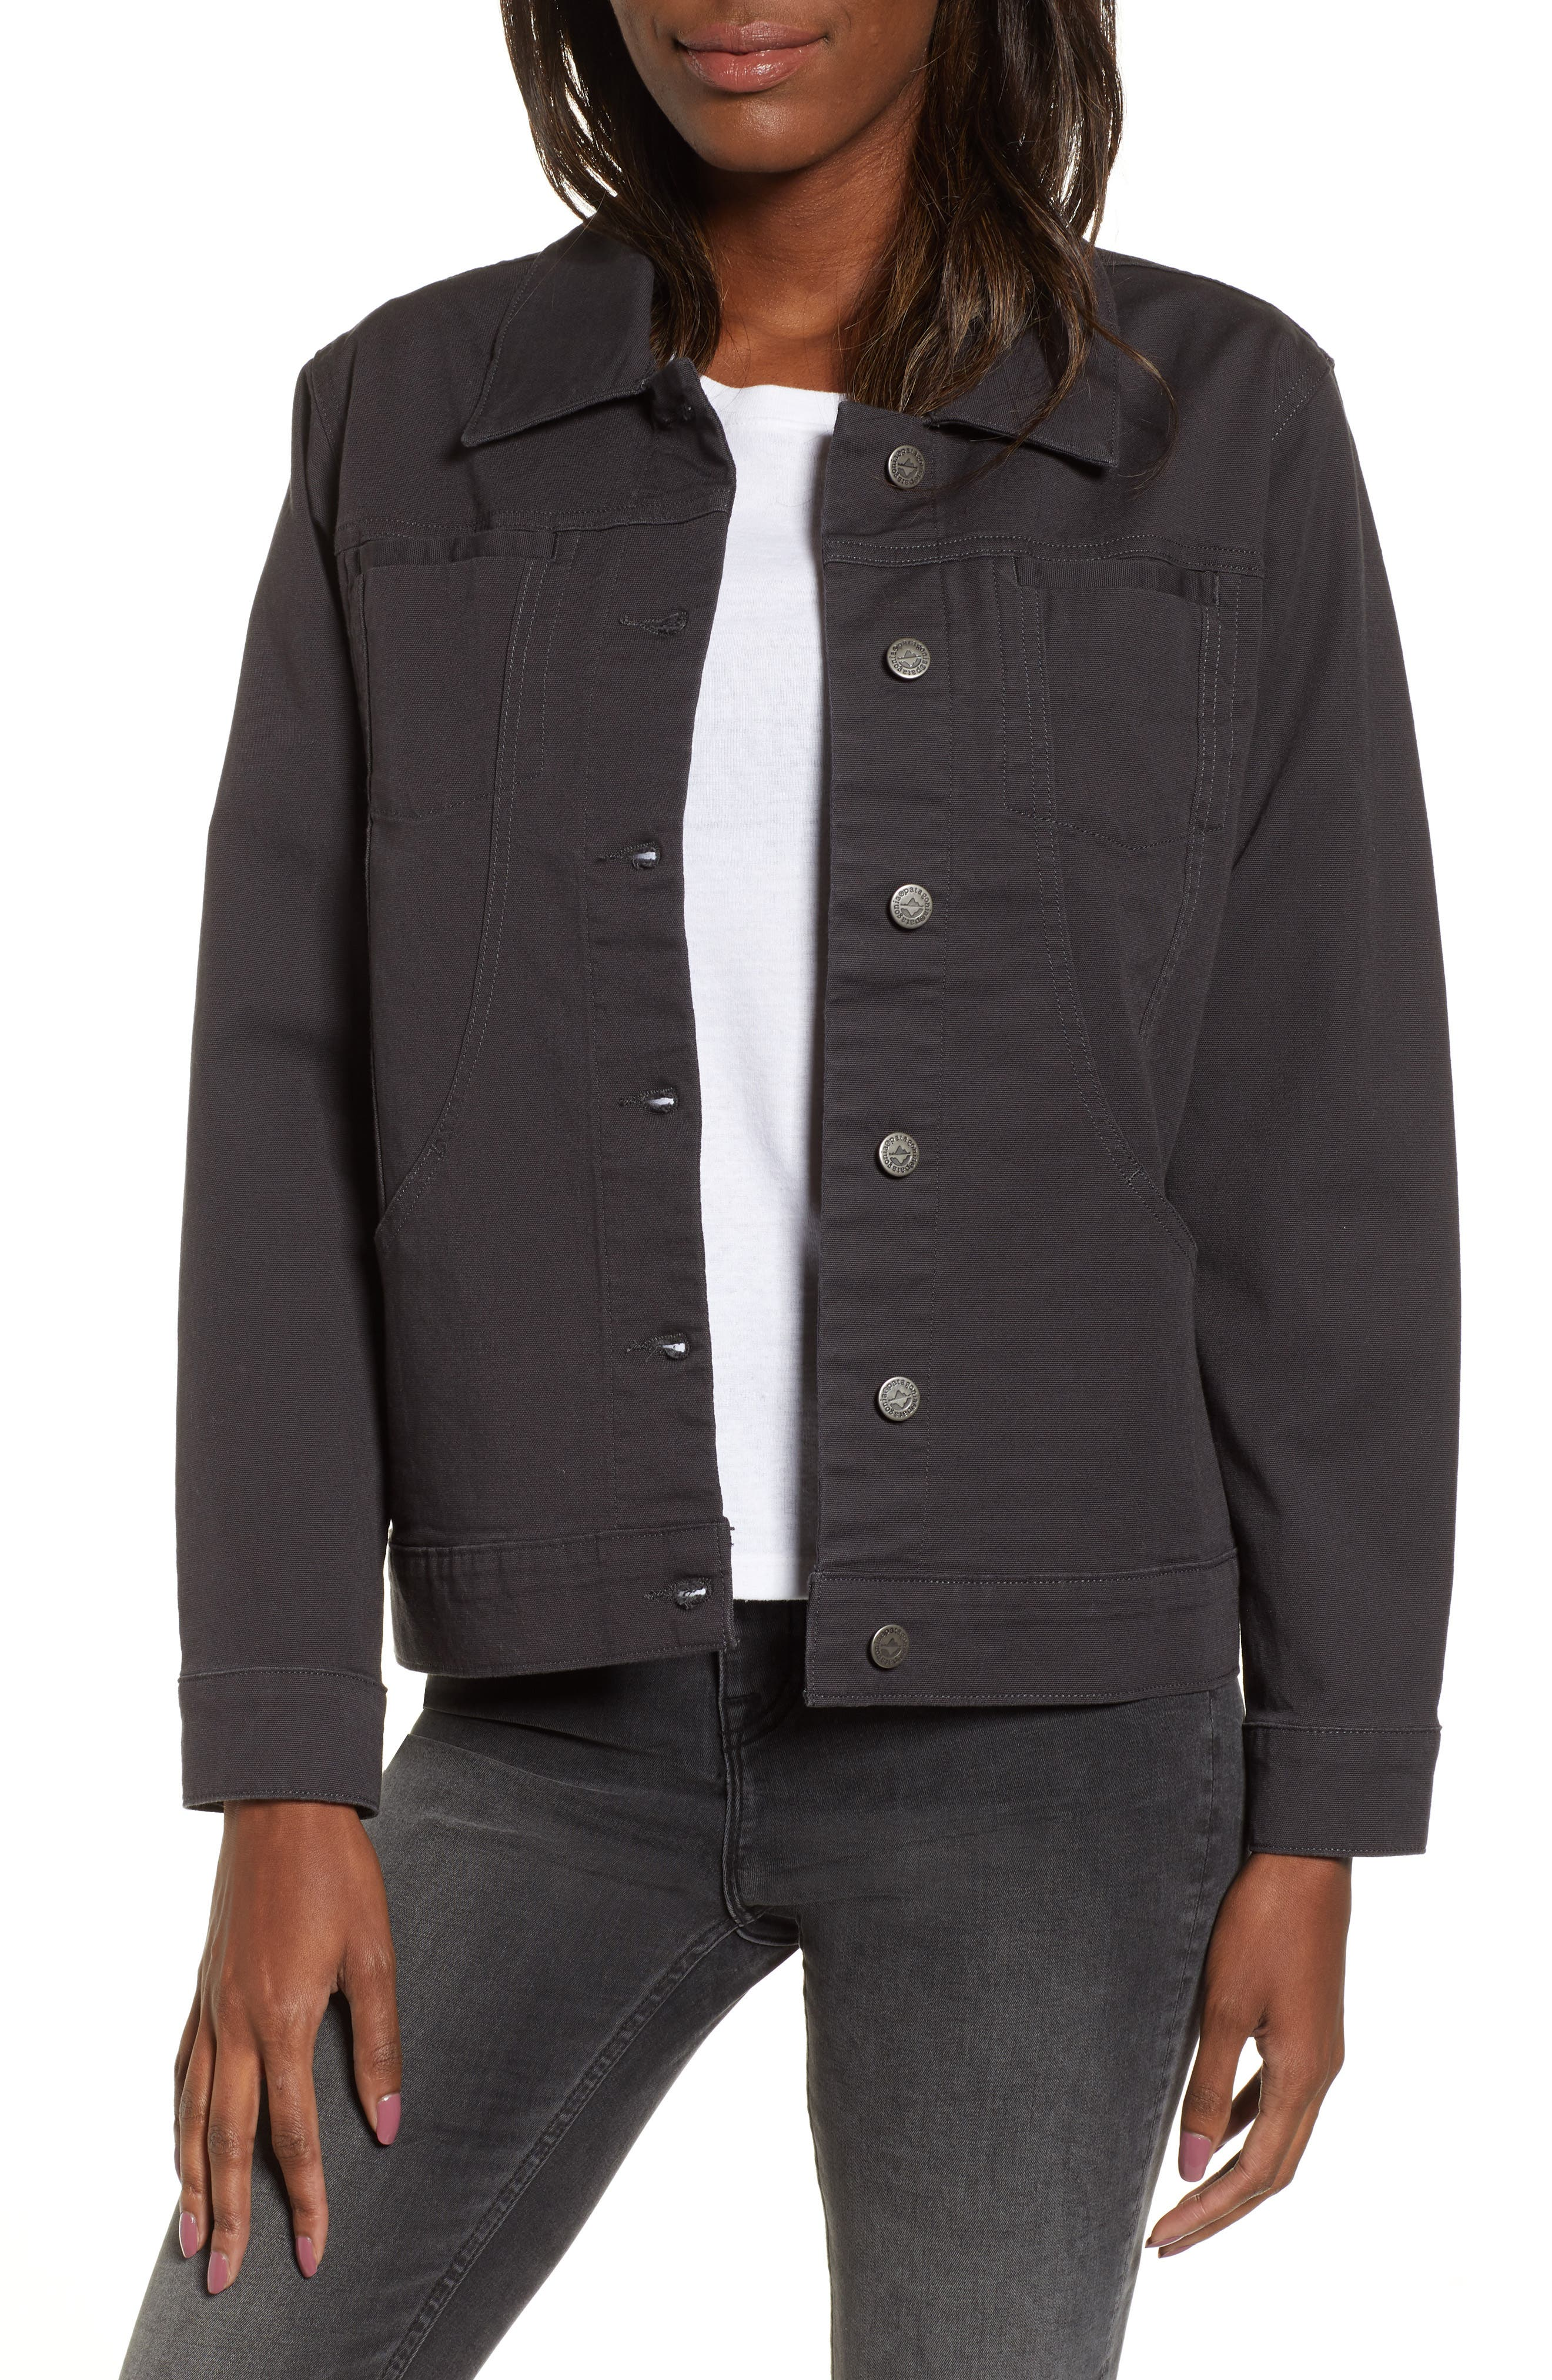 Patagonia Stand Up Shirt Jacket, Black